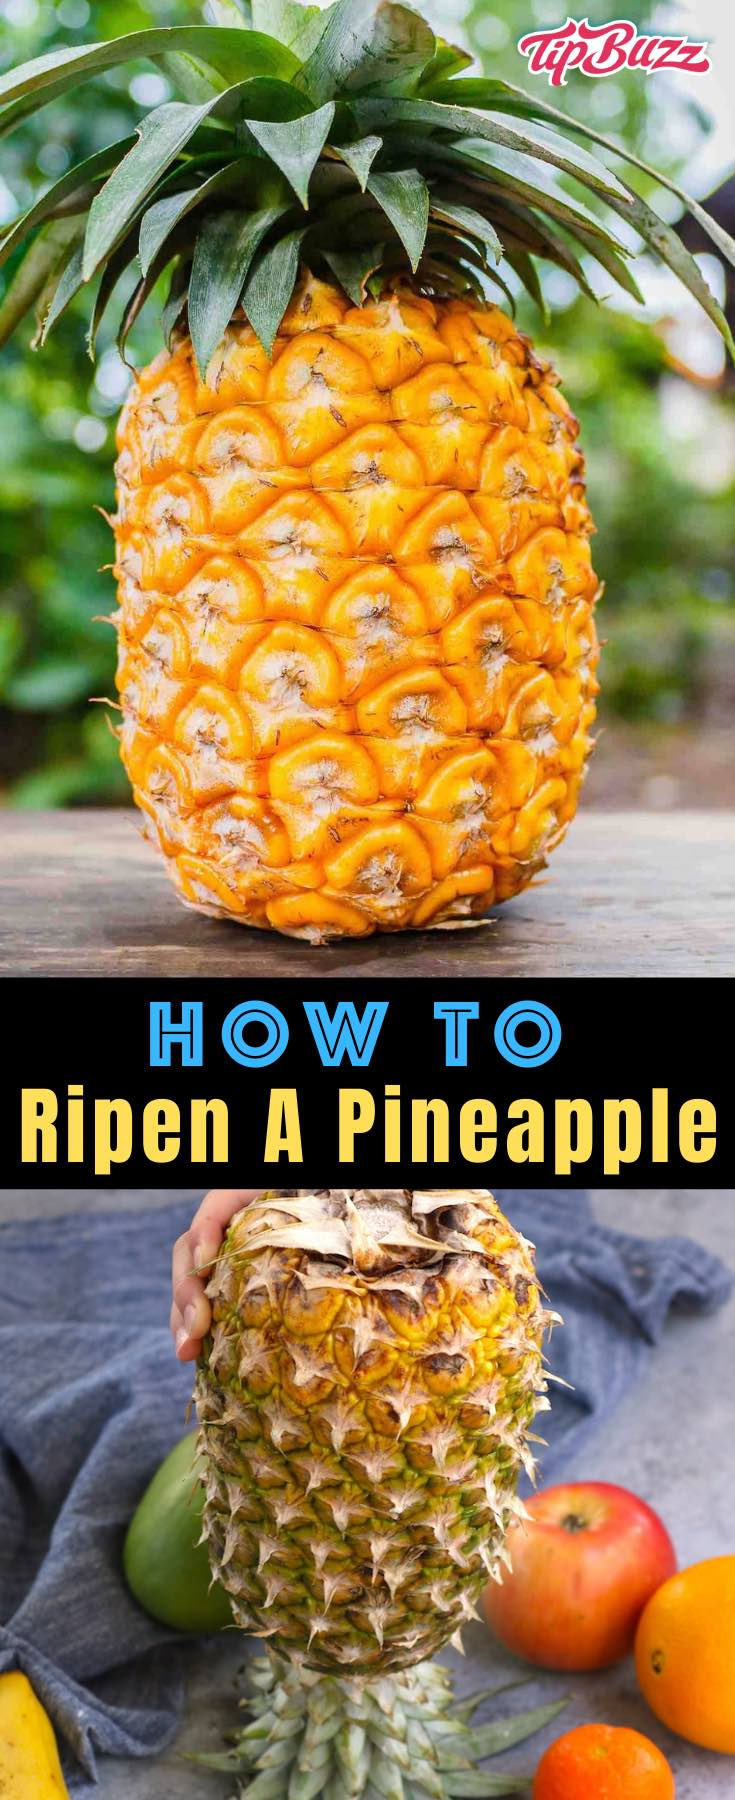 How to Ripen a Pineapple - learn all the tips and tricks to get a ripe pineapple faster! #pineapple